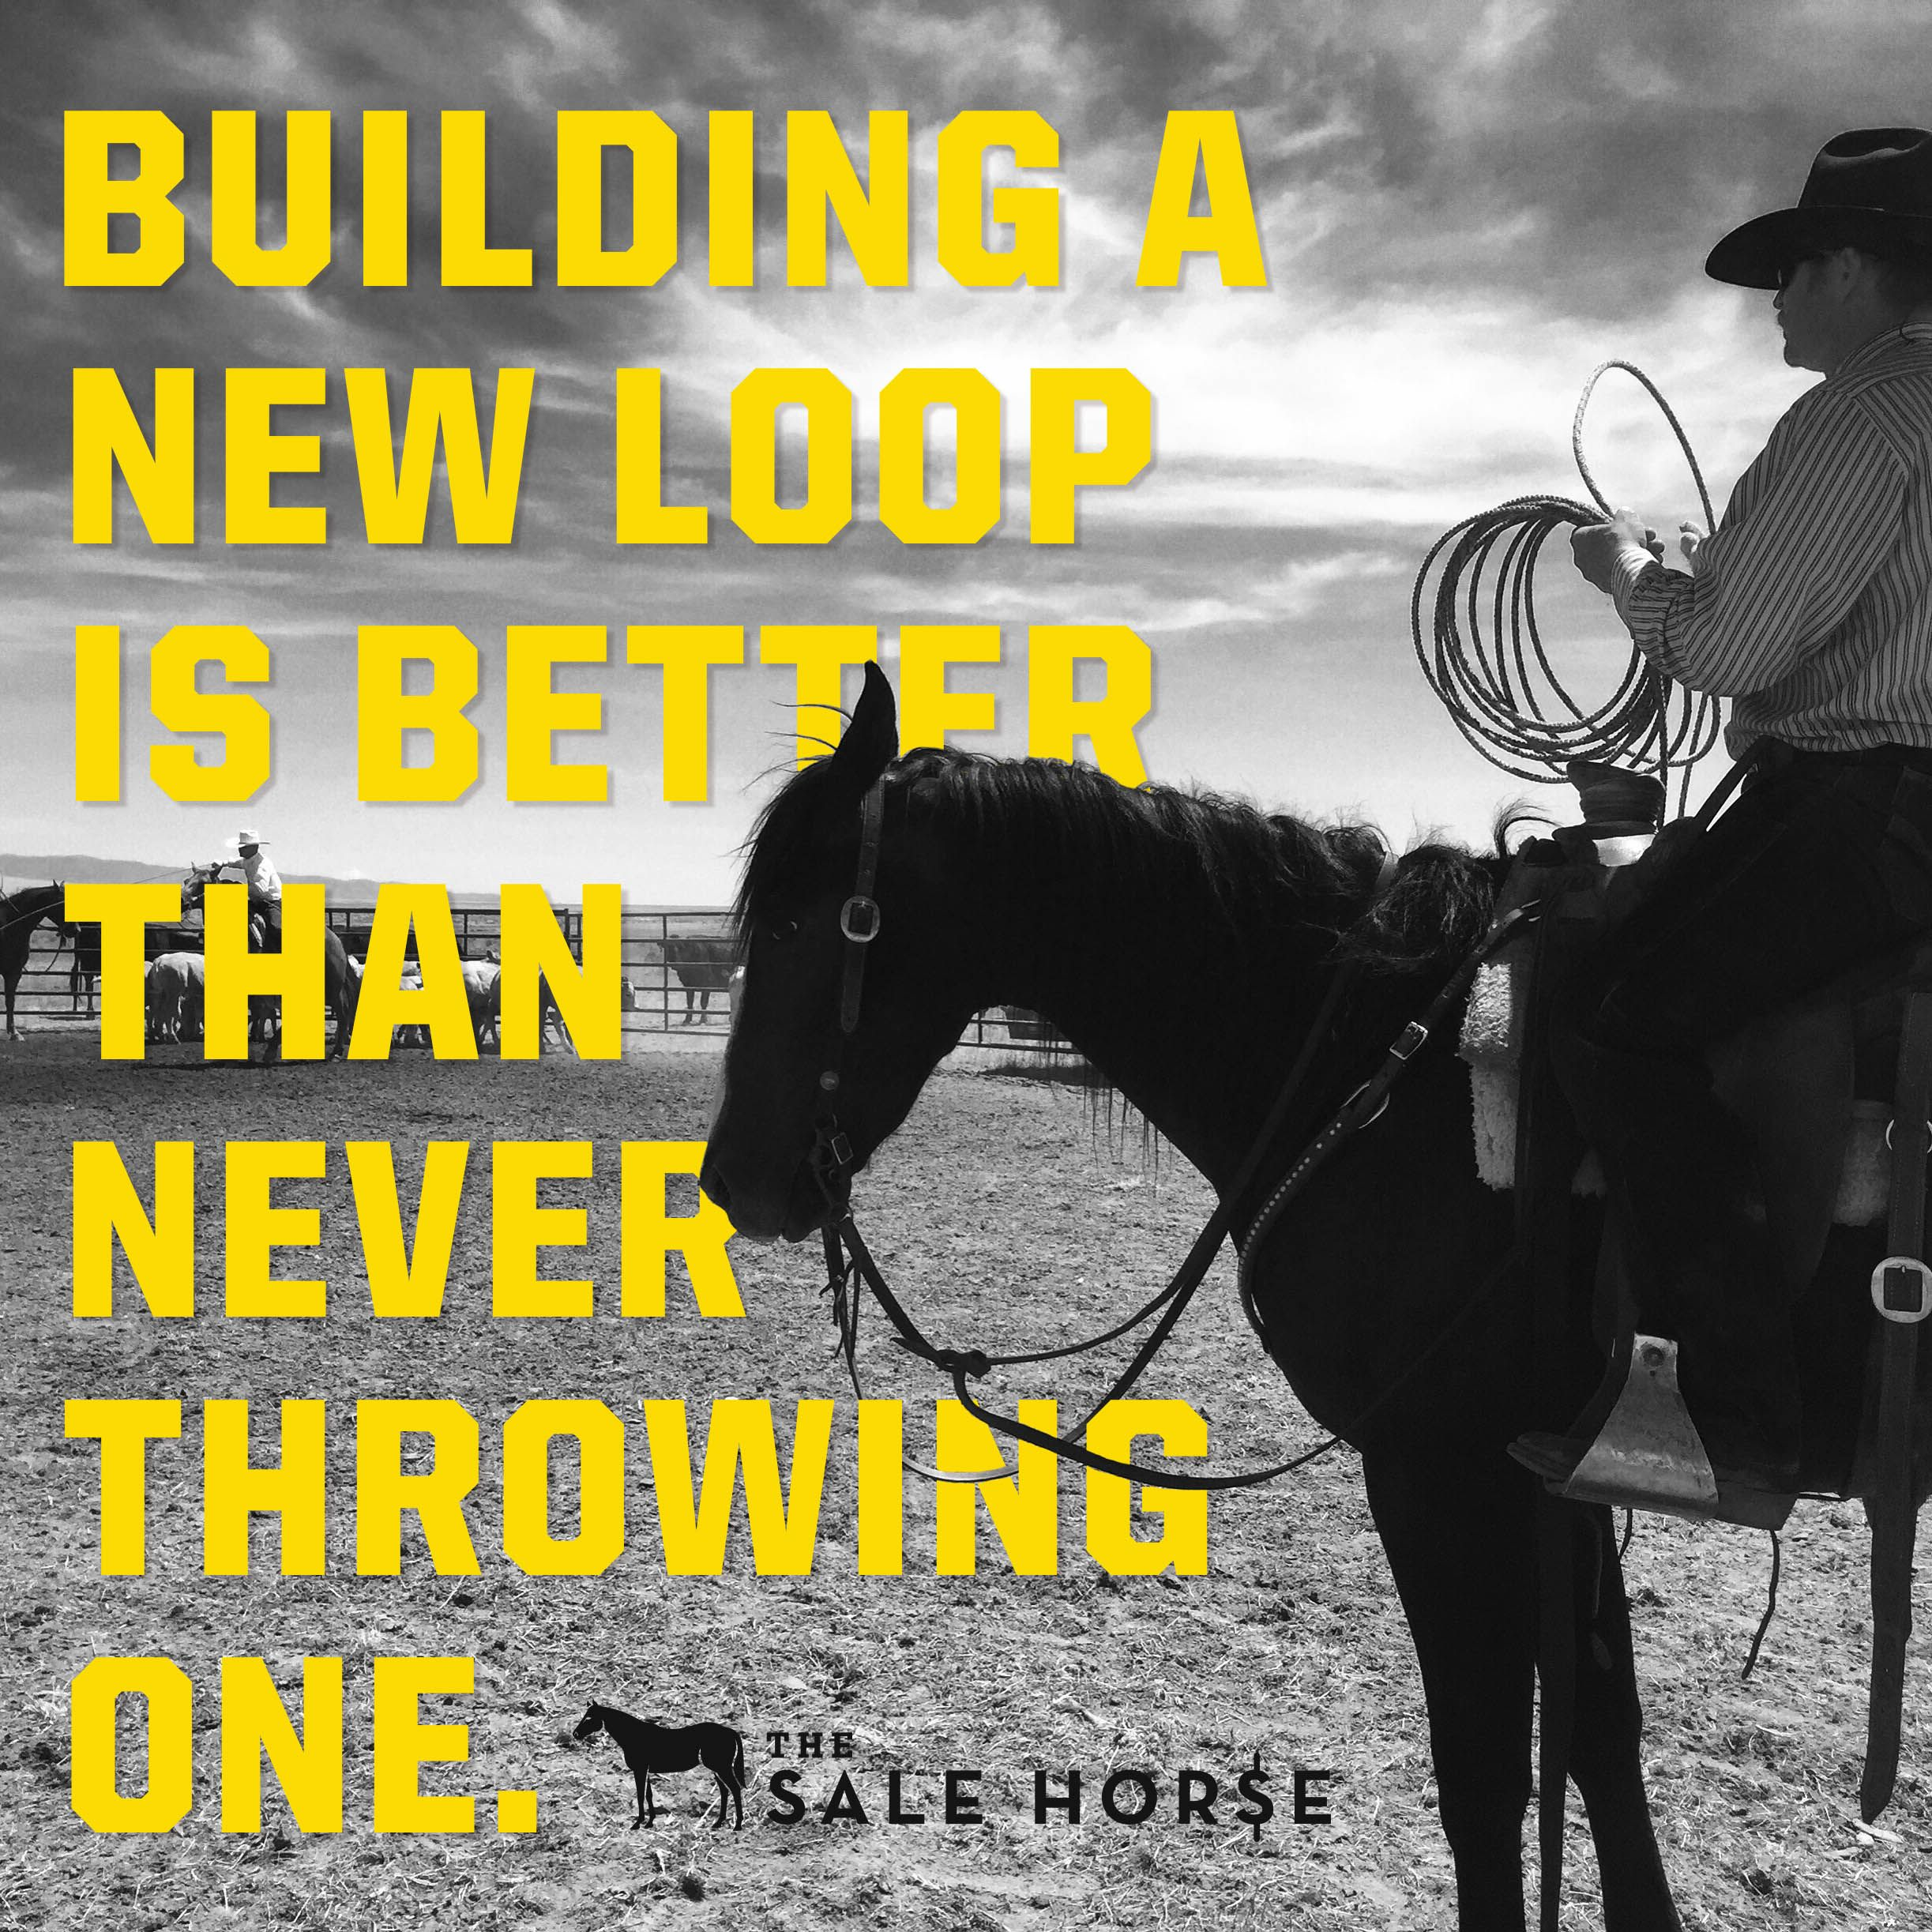 Rodeo Quotes 17 Inspirational Horse Quotes & Resolutions for 2017   | Horses  Rodeo Quotes